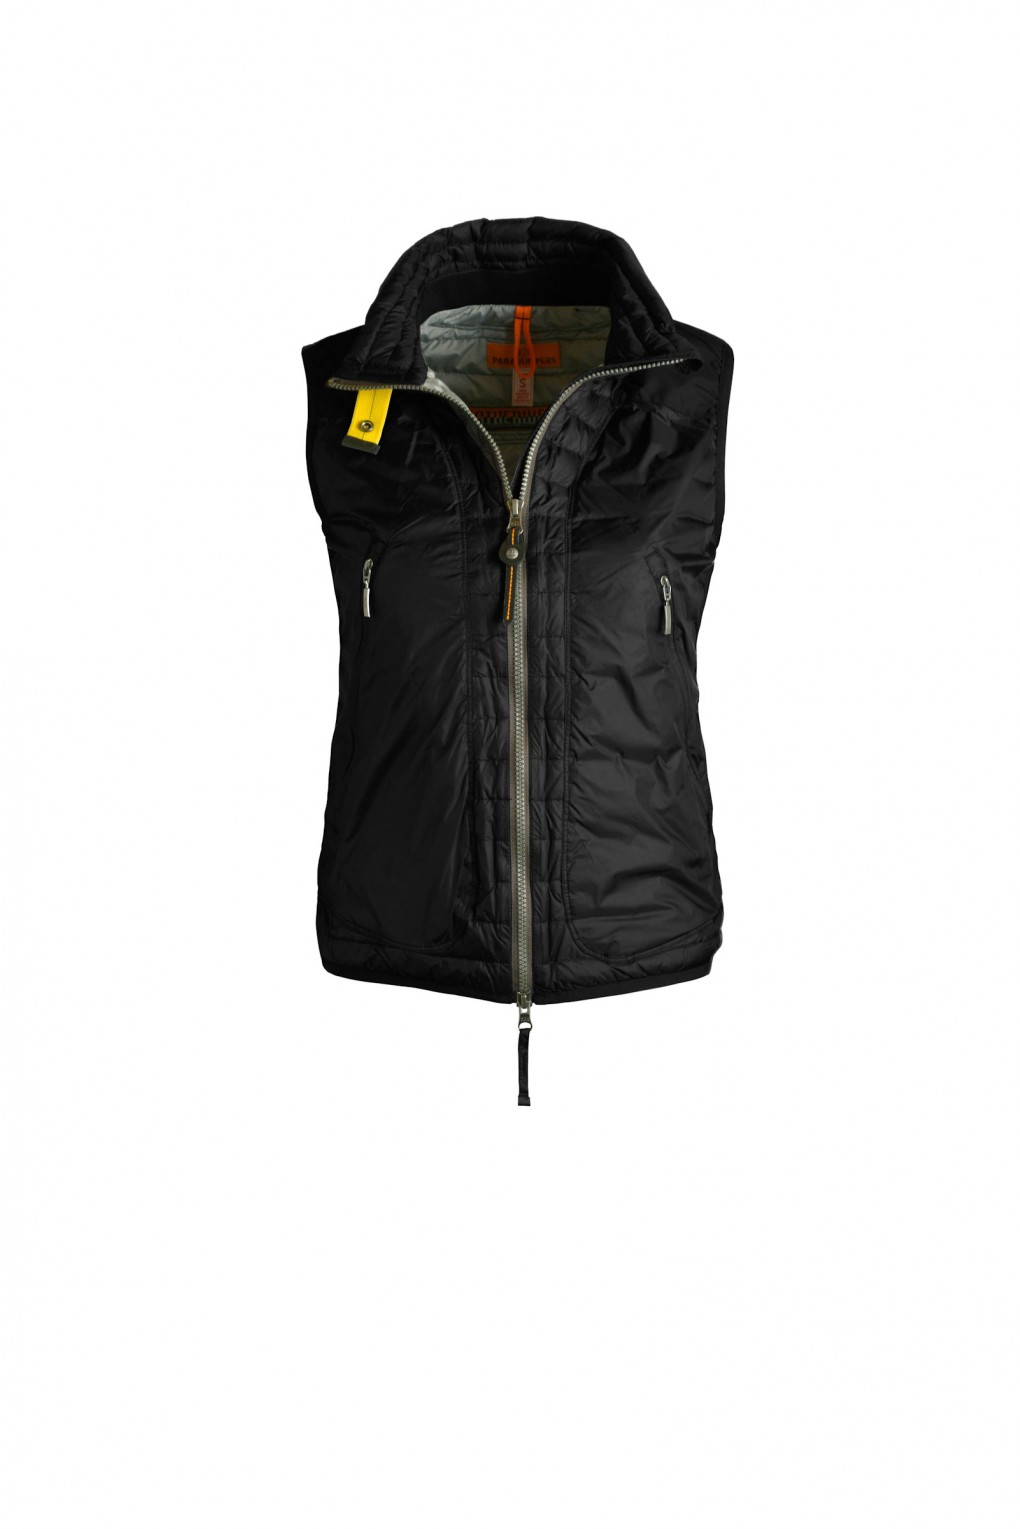 parajumpers BRUNA woman outerwear Black